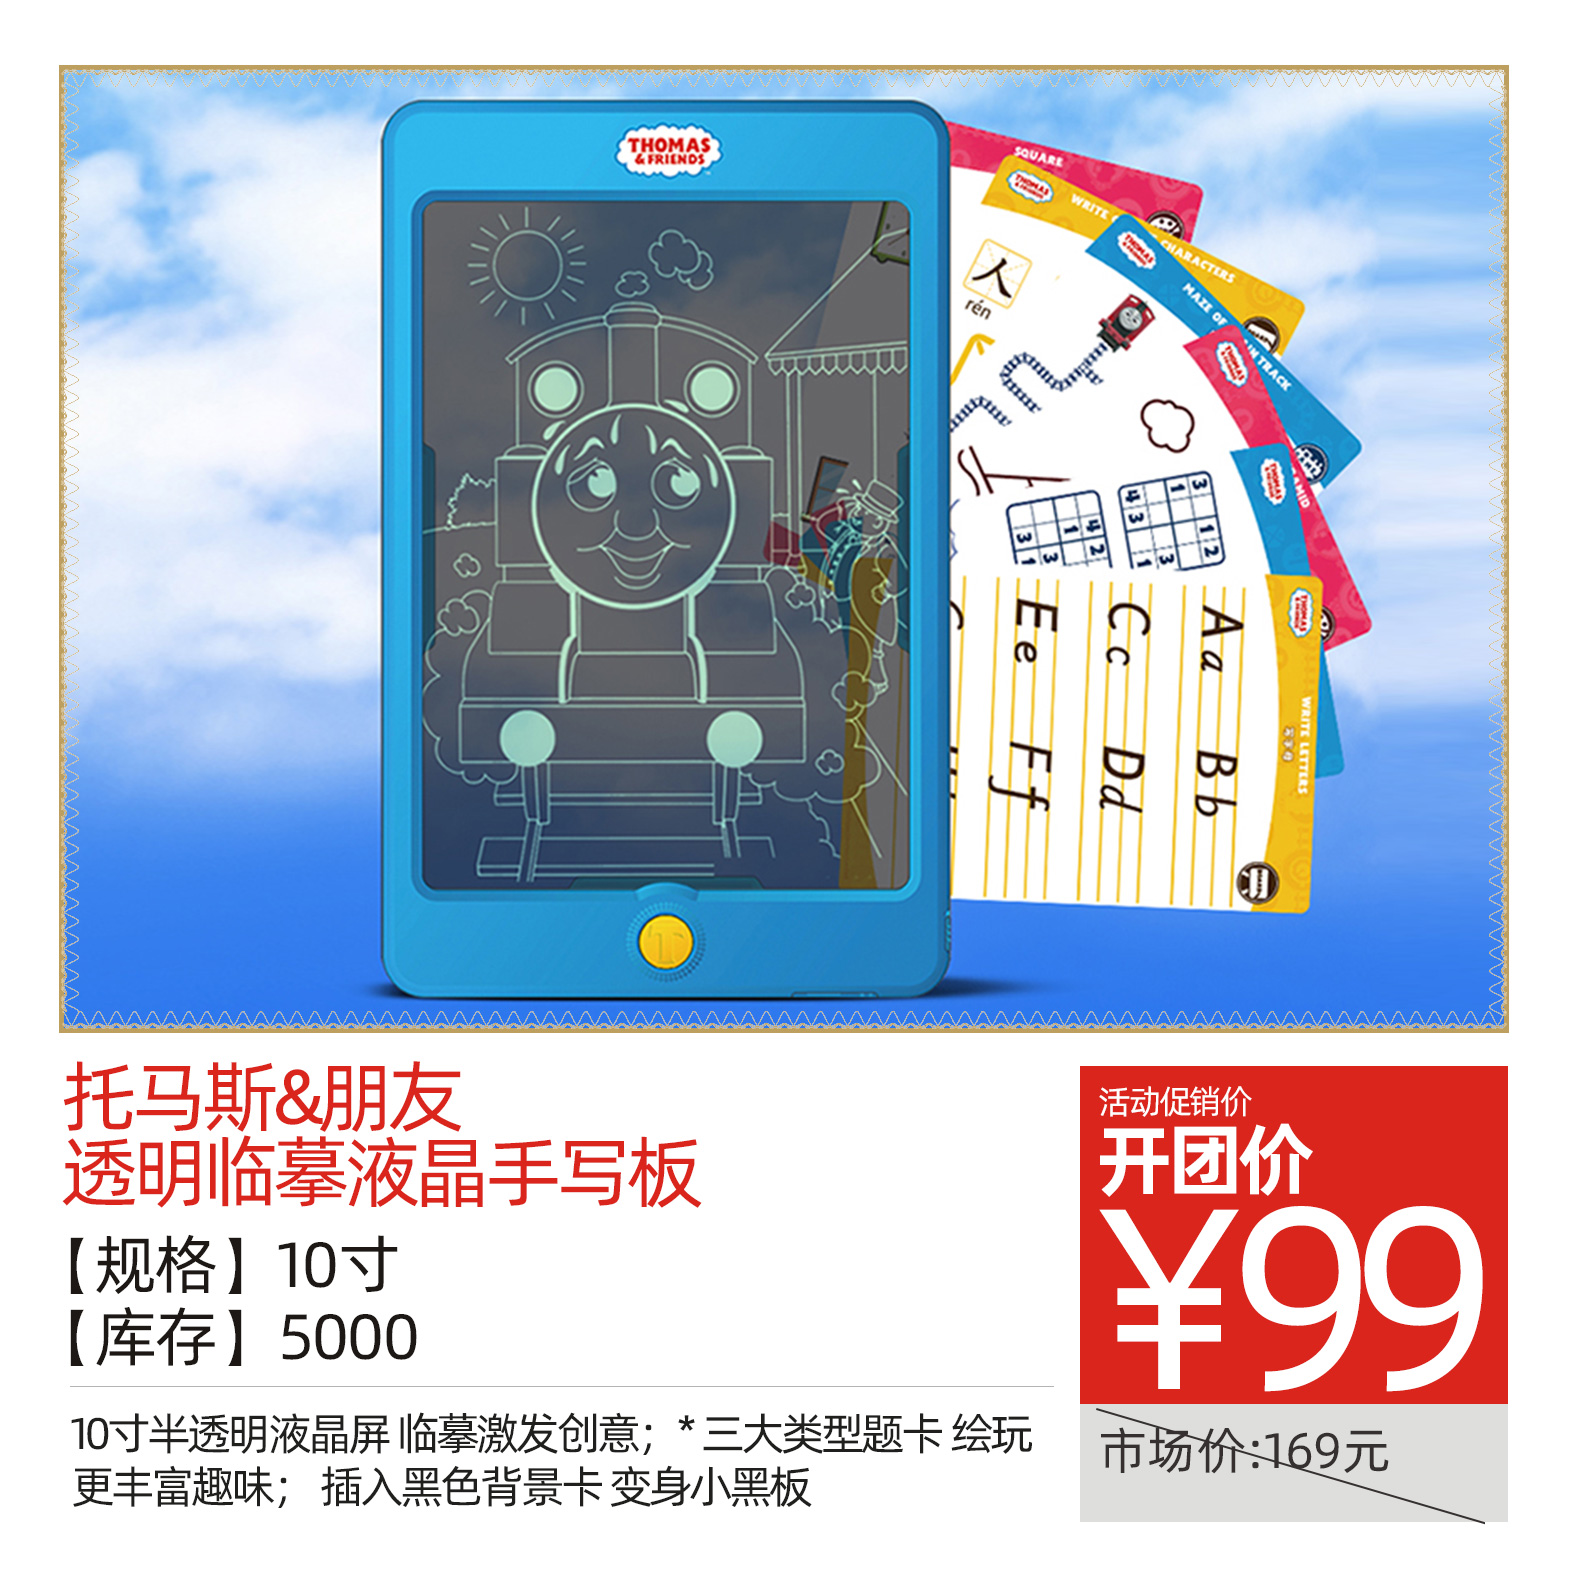 Thomas&Friends(托马斯和朋友)儿童智能透明液晶画板TH1903